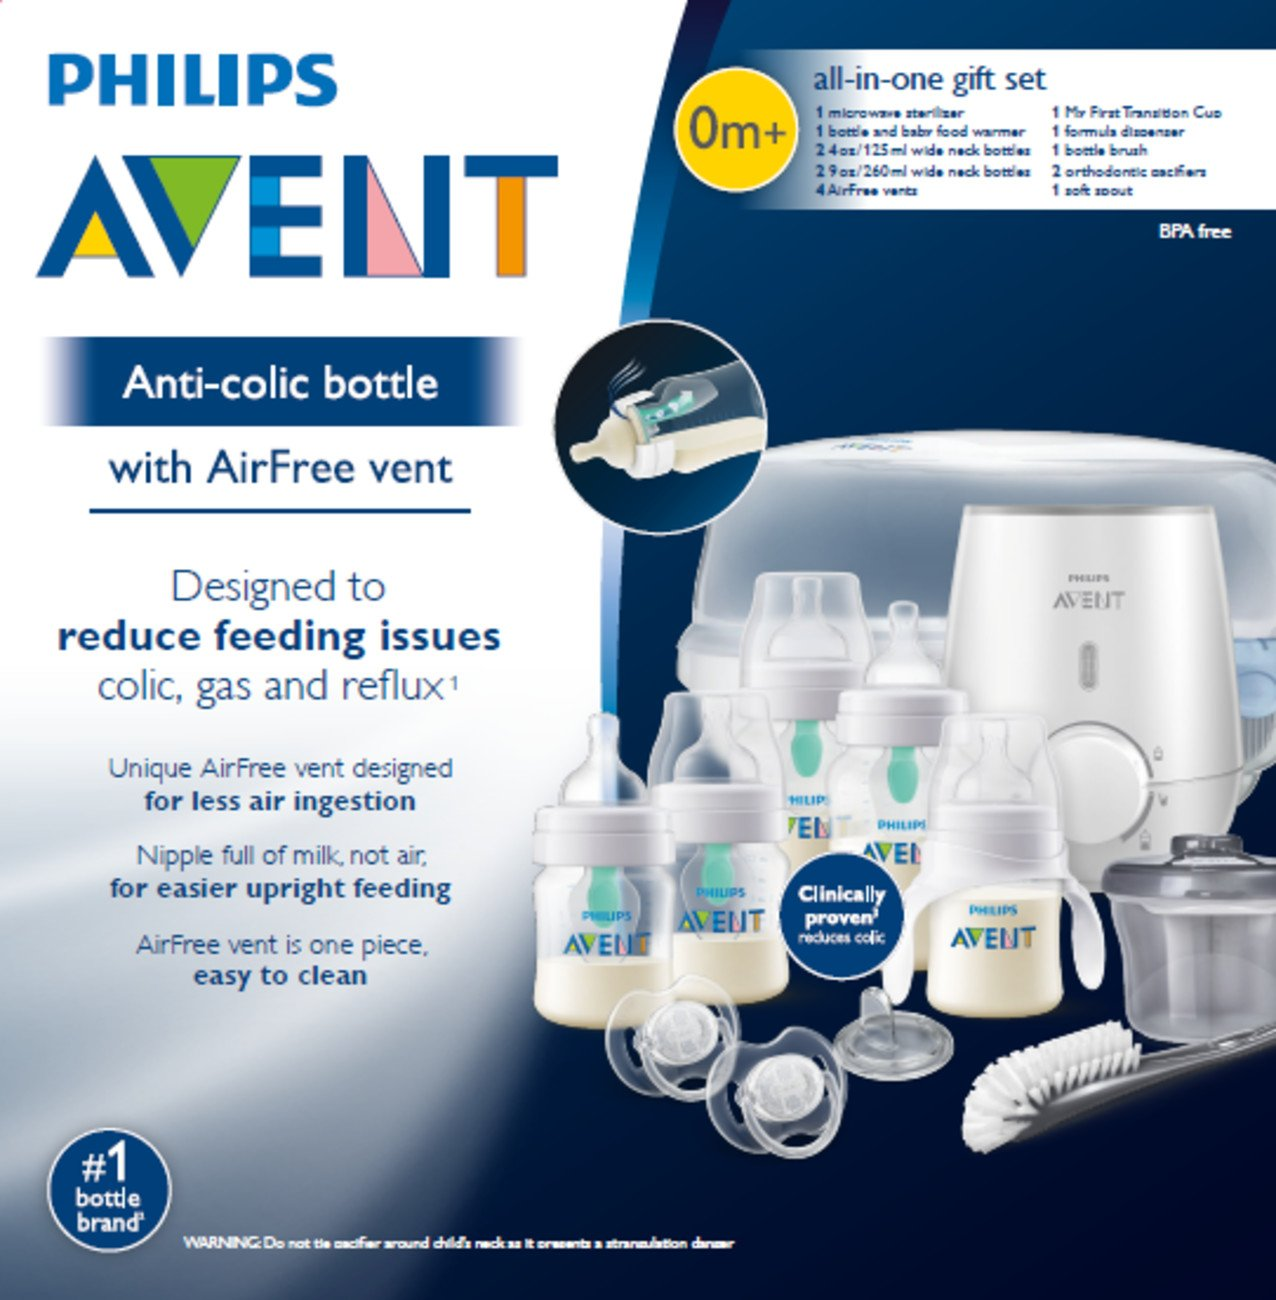 29e61bd19fb Amazon.com   Philips Avent Anti-colic Baby Bottle with AirFree vent Gift  Set All In One